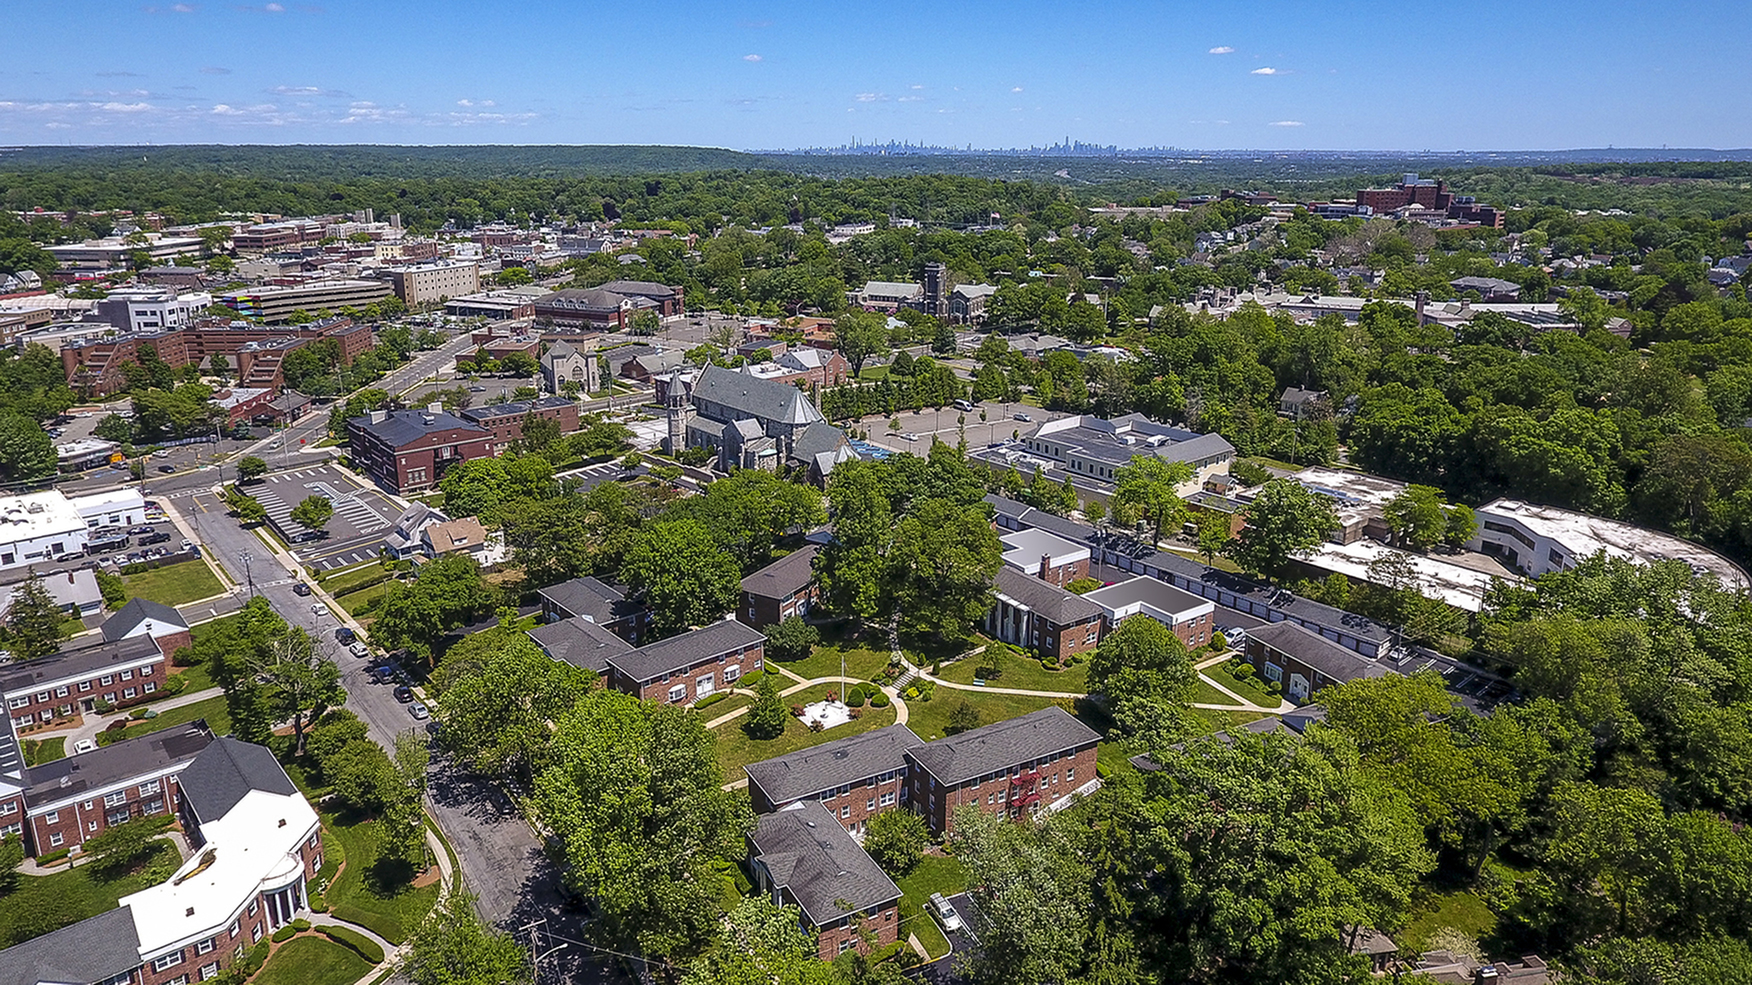 Aerial view of The Parc at Summit apartment grounds and city view in Summit, NJ